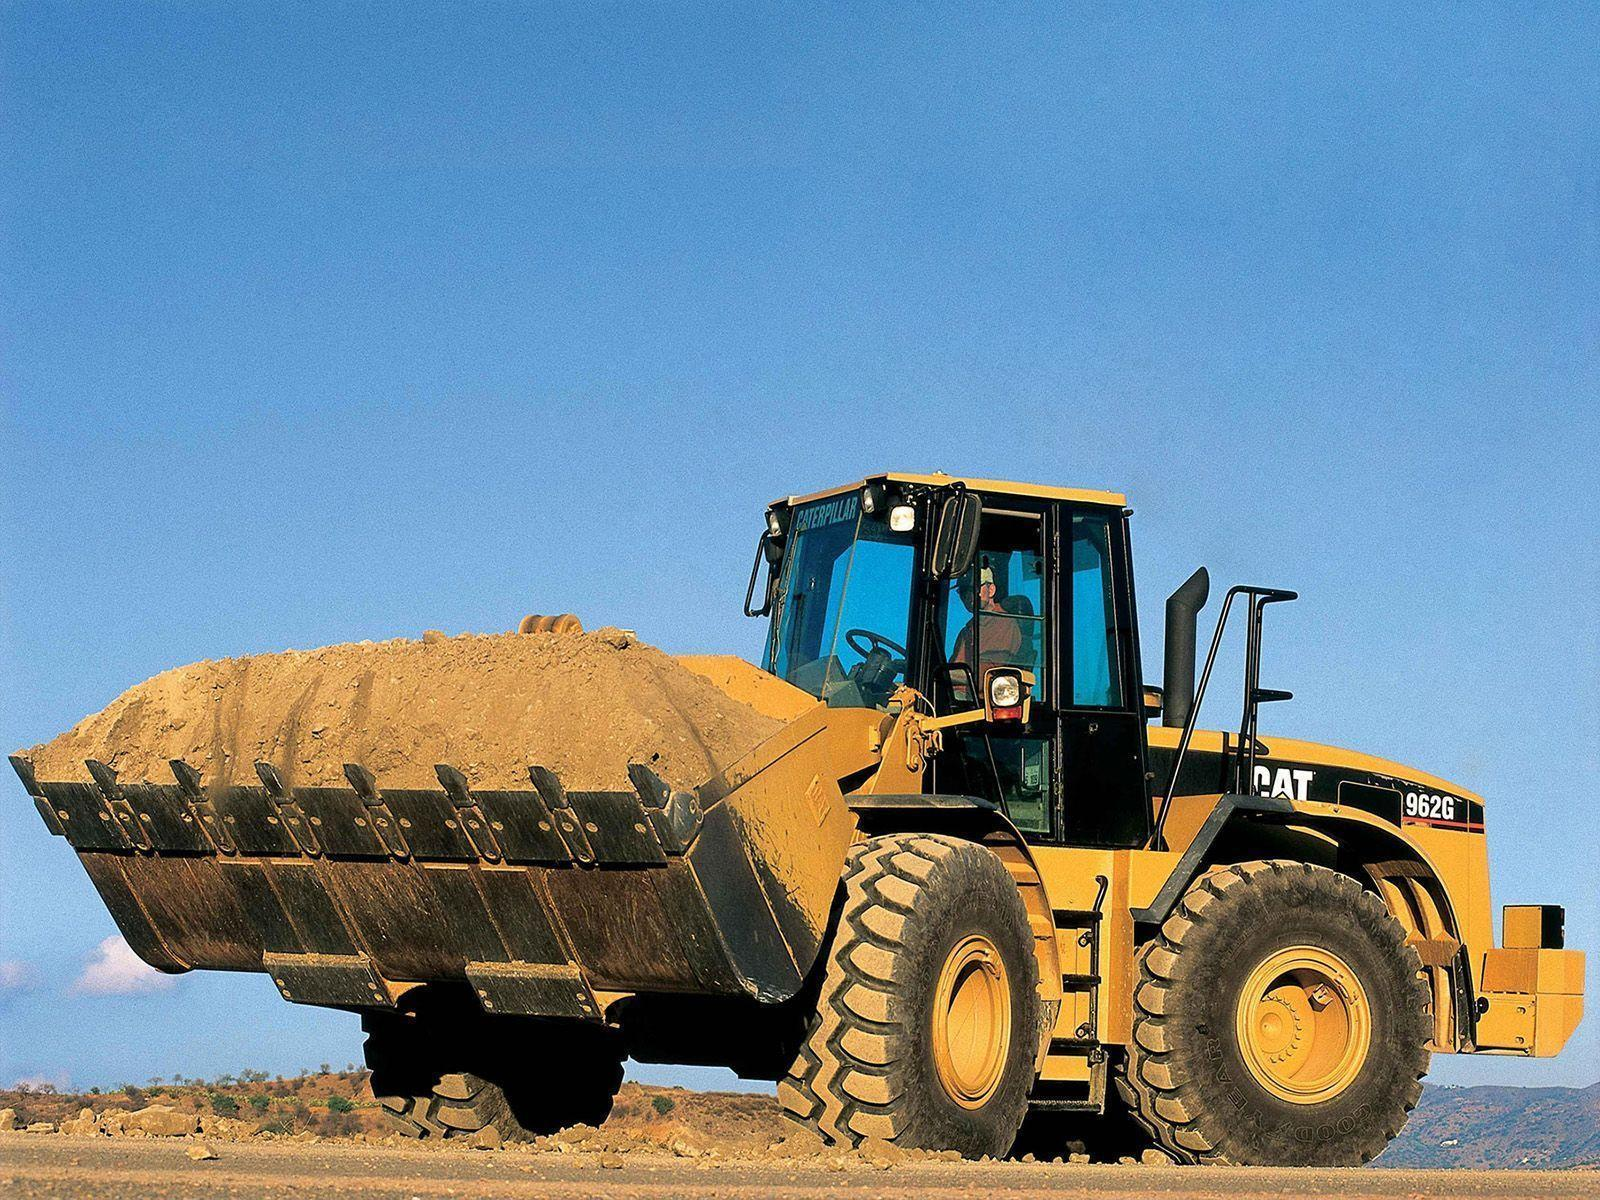 Caterpillar Equipment Wallpapers 1600x1200